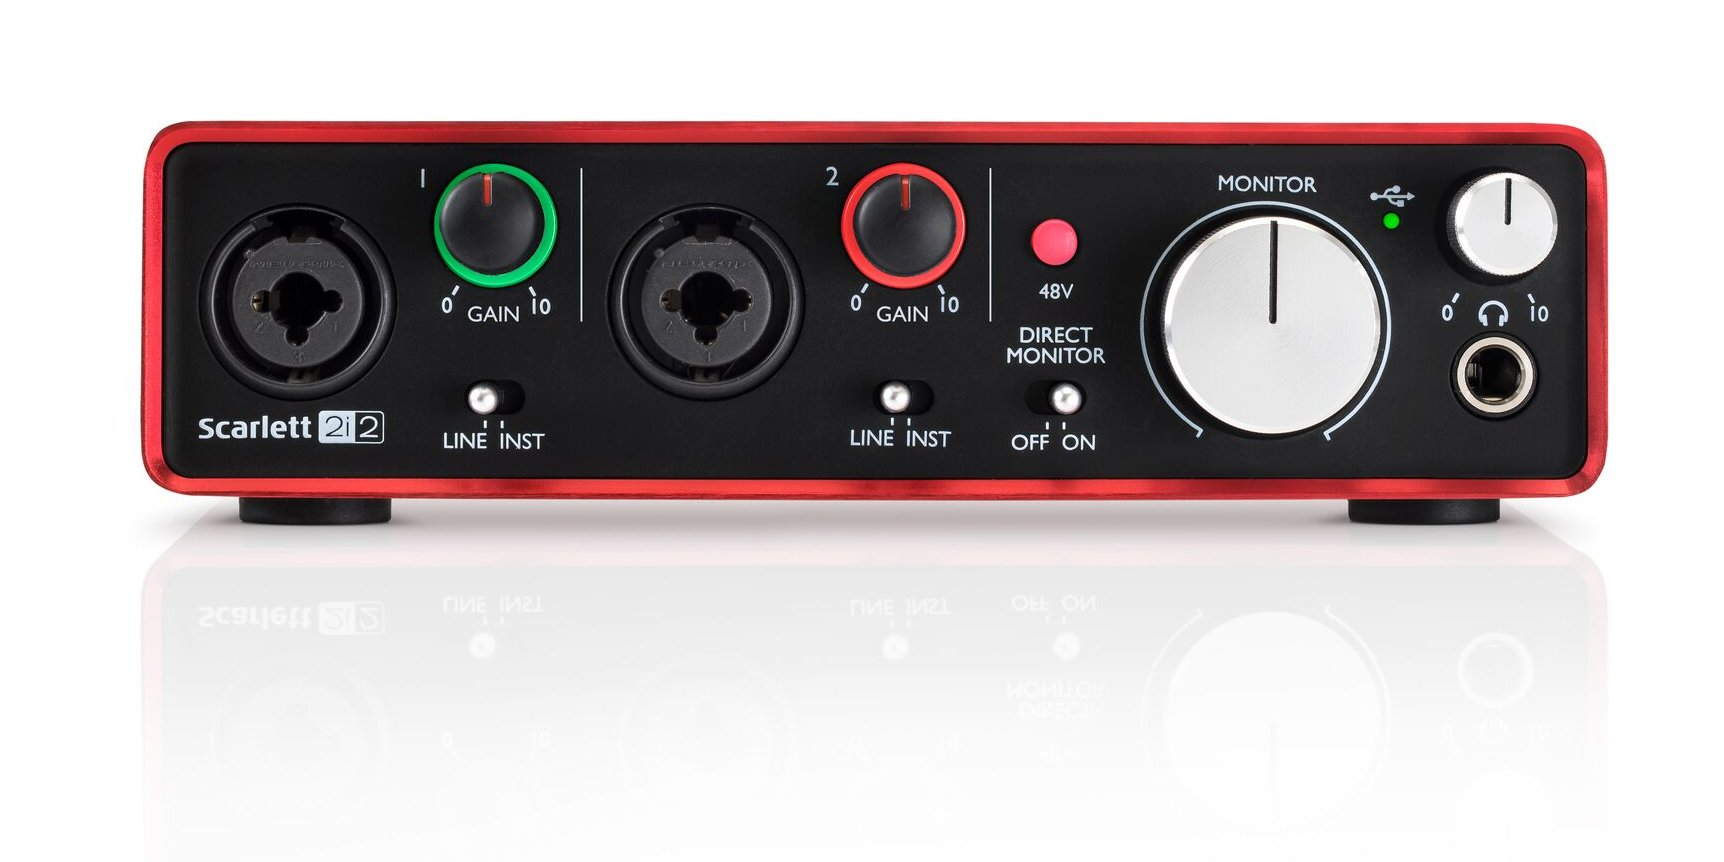 2x2 USB 2.0 Audio Interface